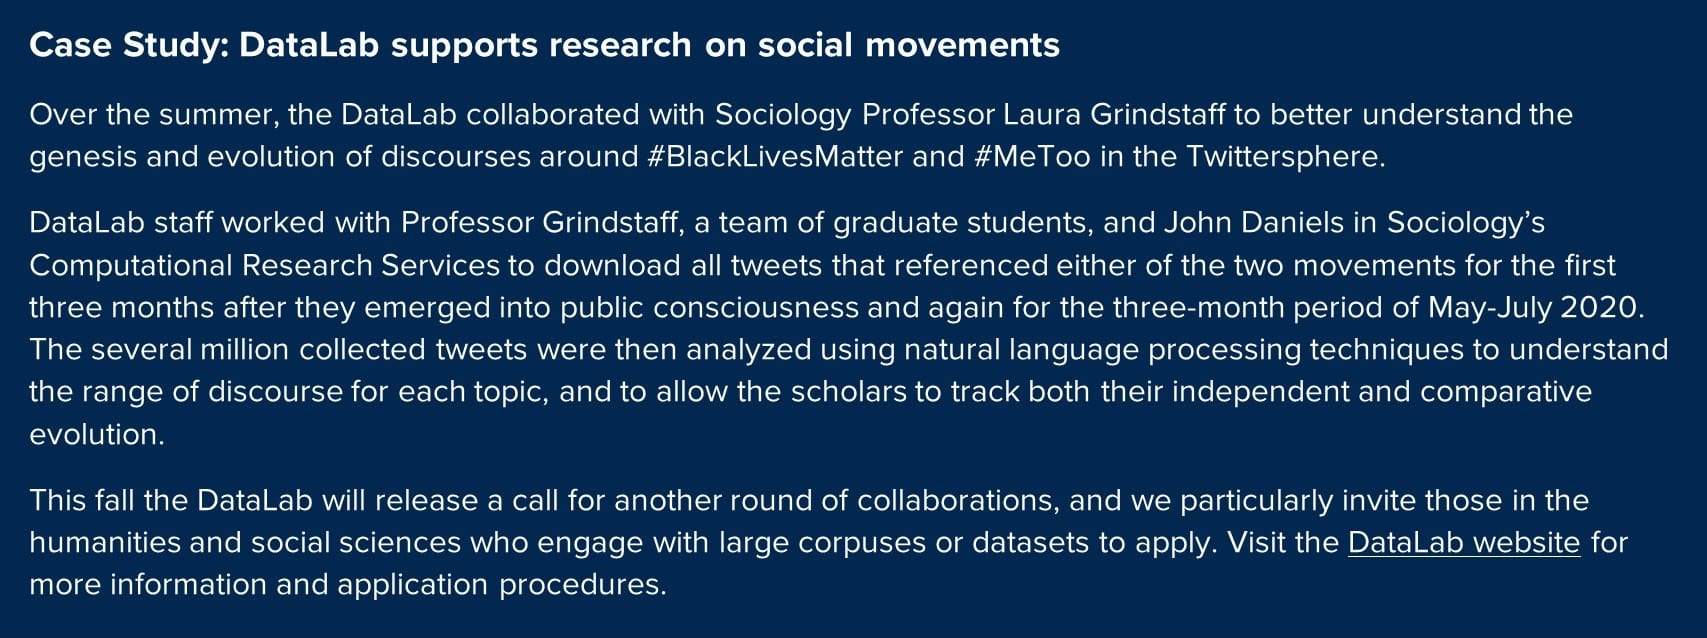 Case study on DataLab support for research in the humanities and social sciences